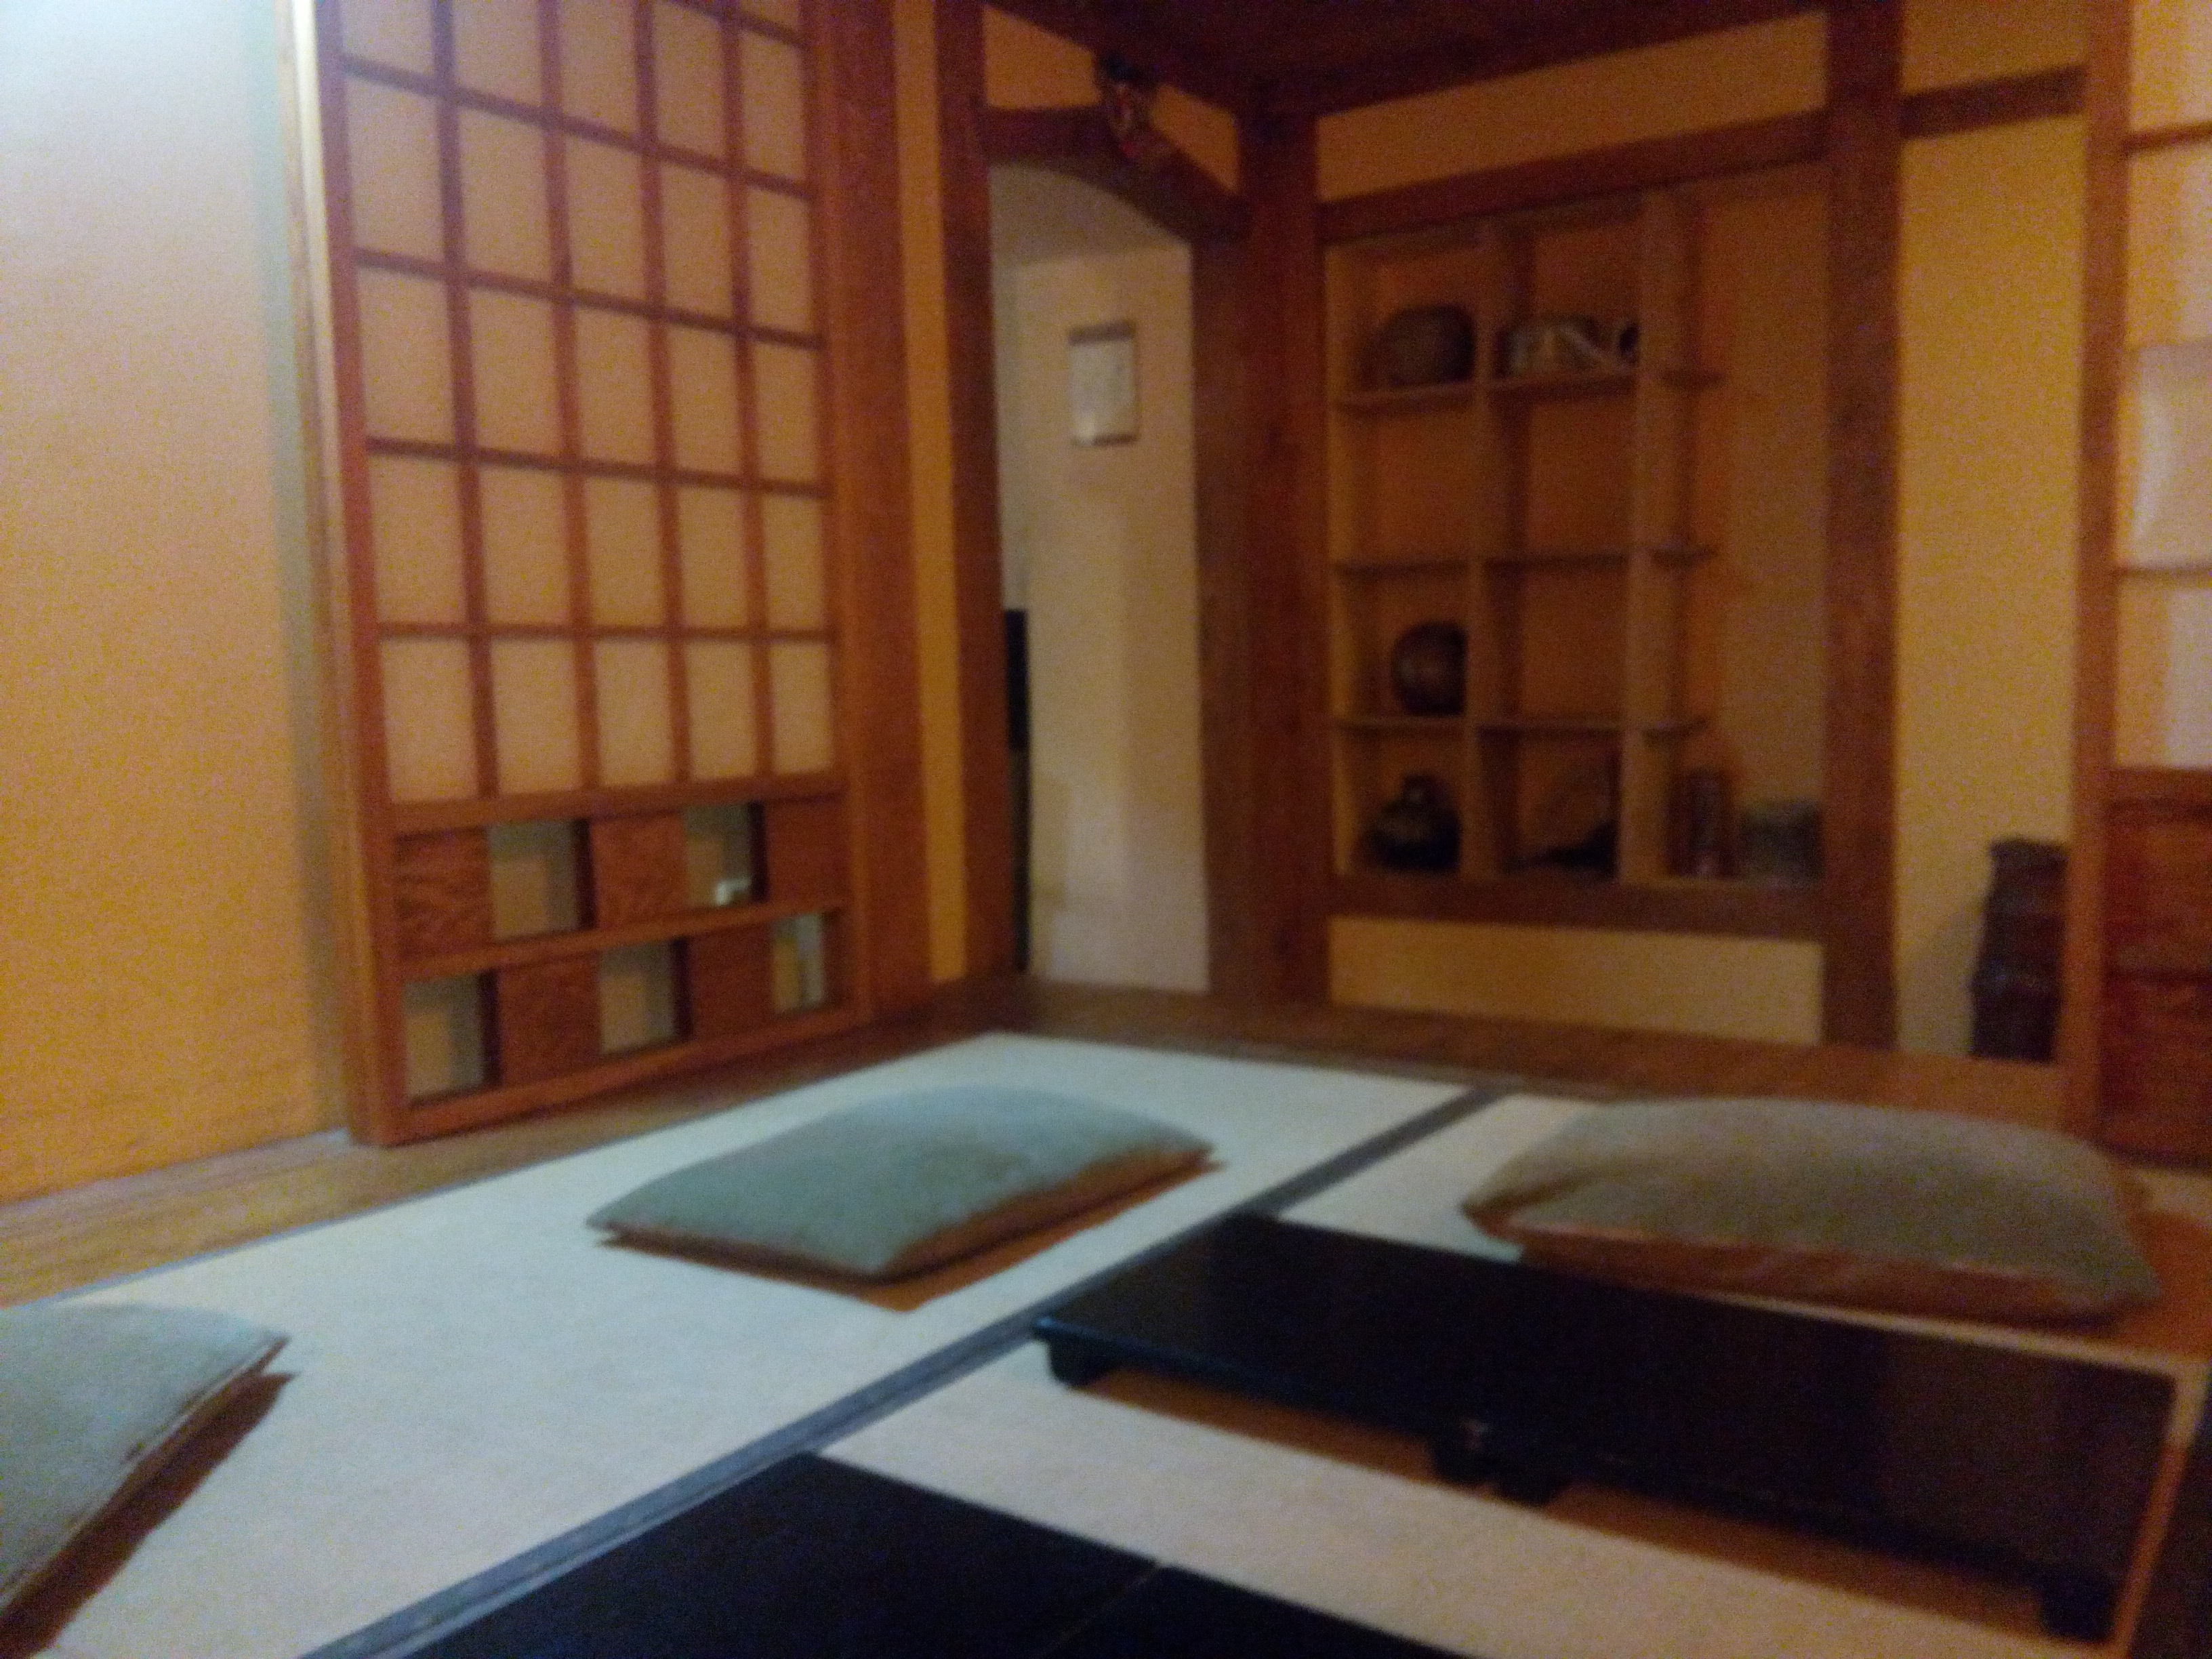 A room with wooden and paper panels in the walls and cushions on the floor